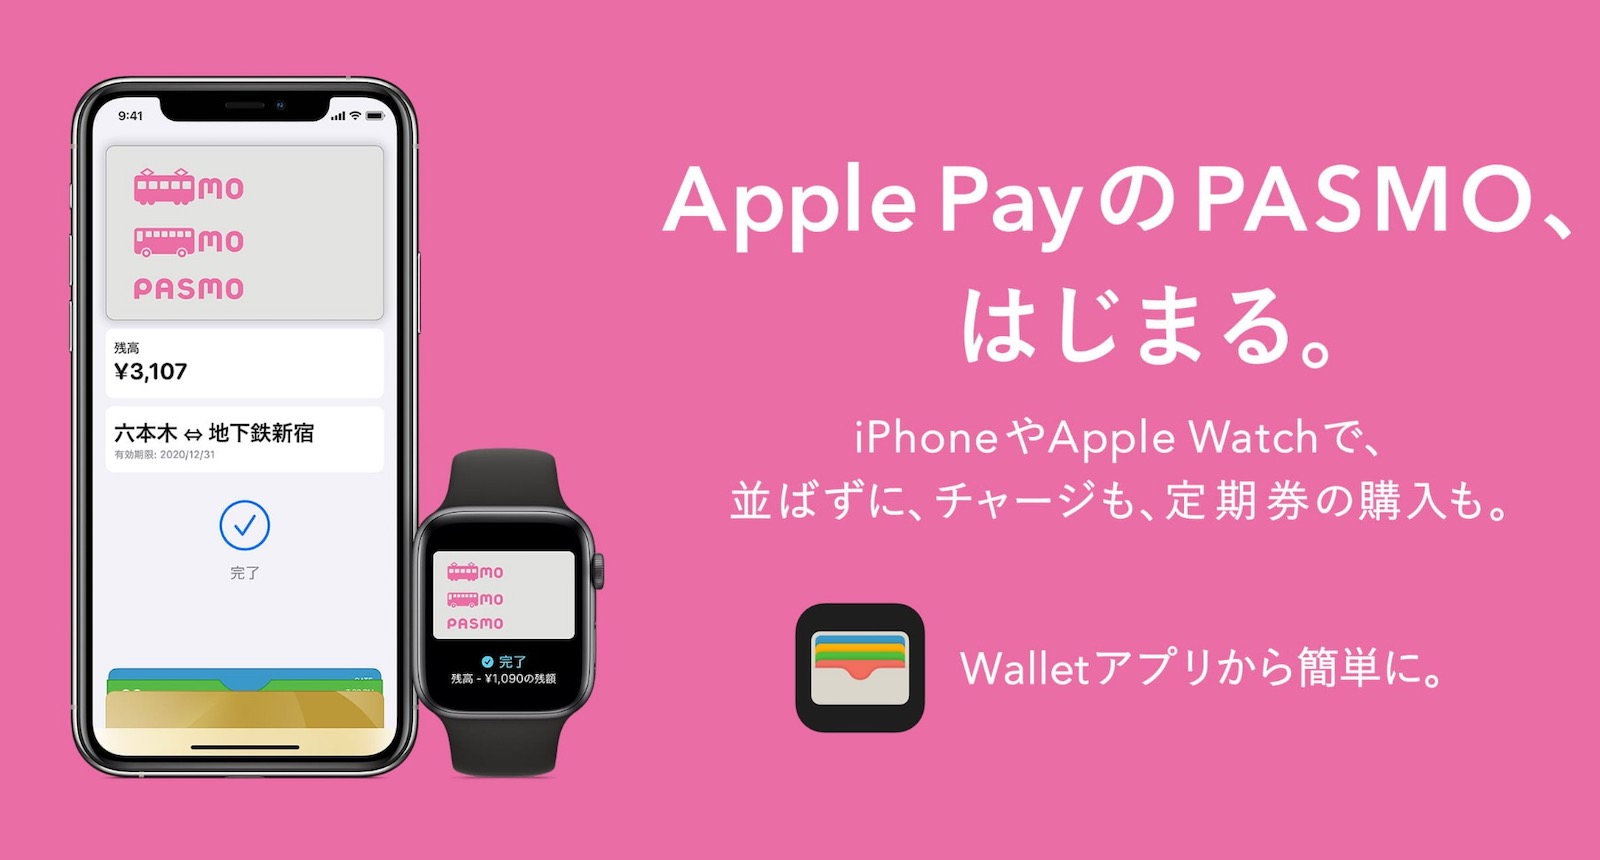 Apple Pay and PASMO